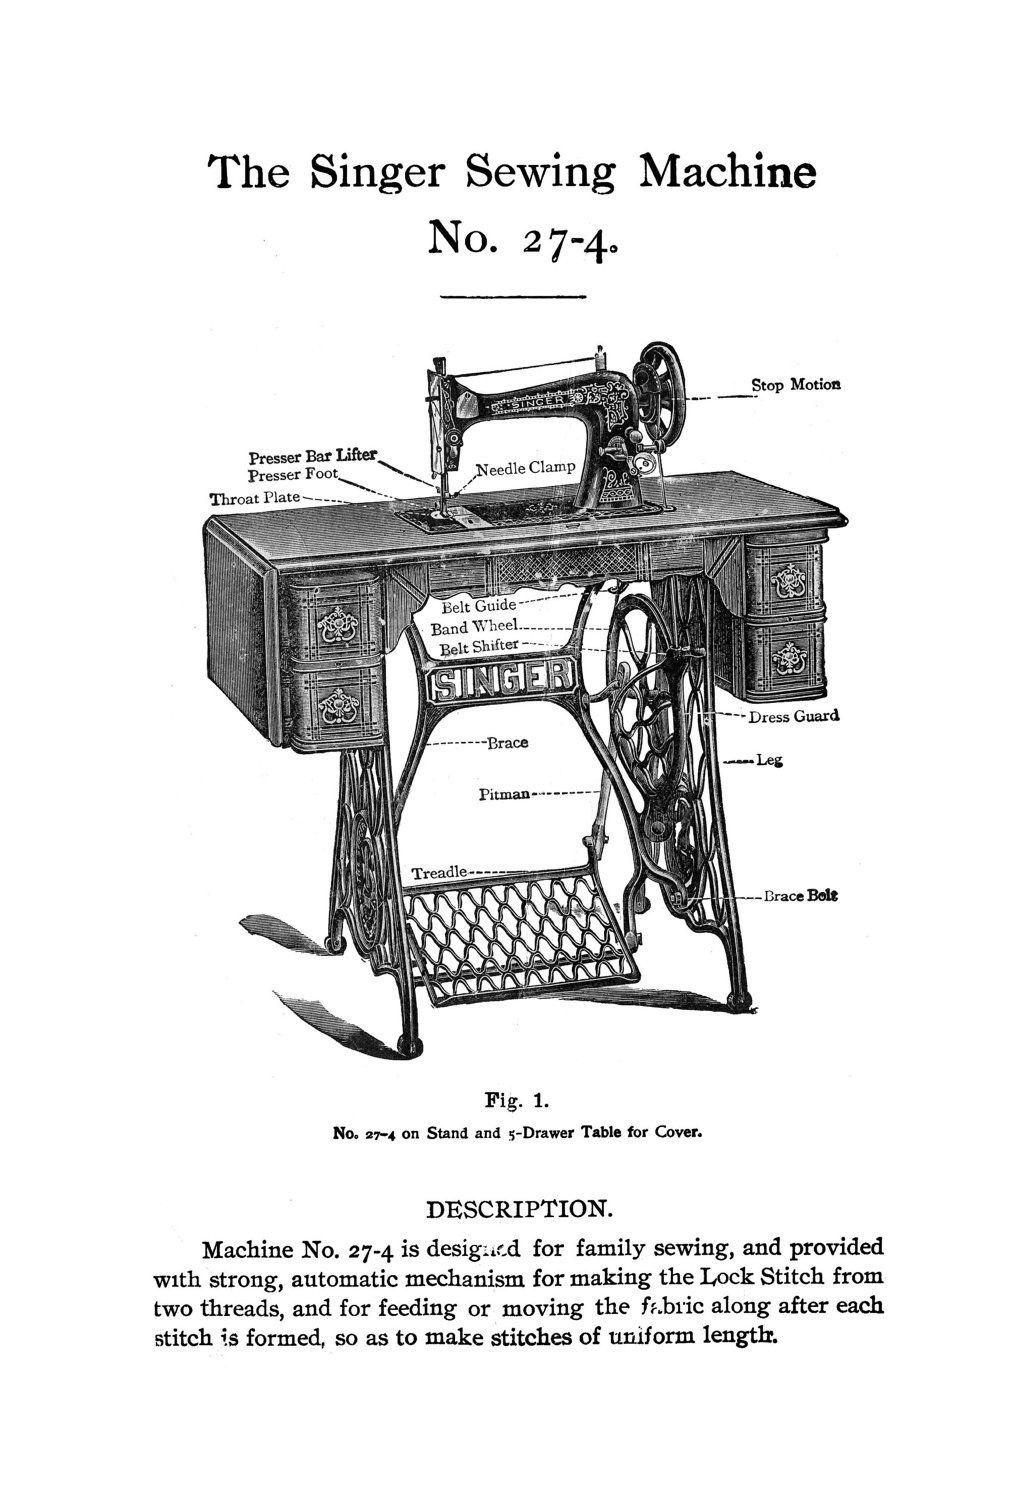 Singer Pedal Wiring Diagram Library Sewing Machine 1906 Edwardian Treadle Attachments Use Guide Book 27 4 Parts Numbers